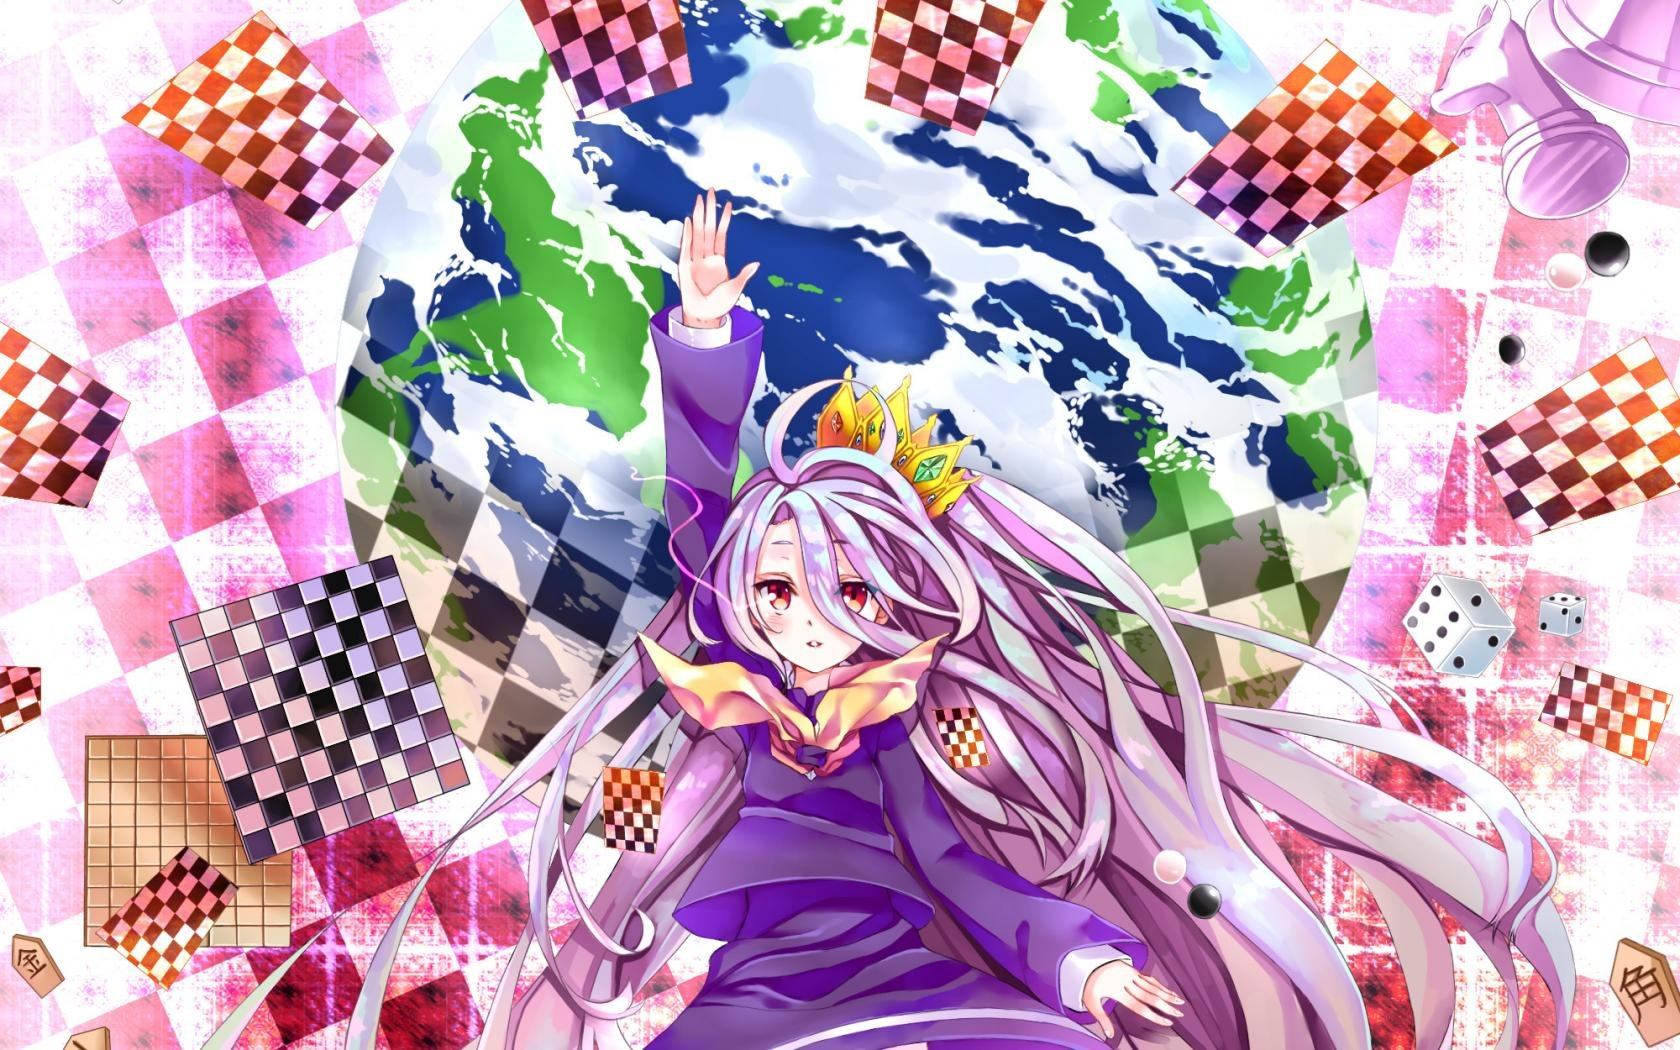 Best Shiro No Game No Life Wallpaper Id 102621 For High